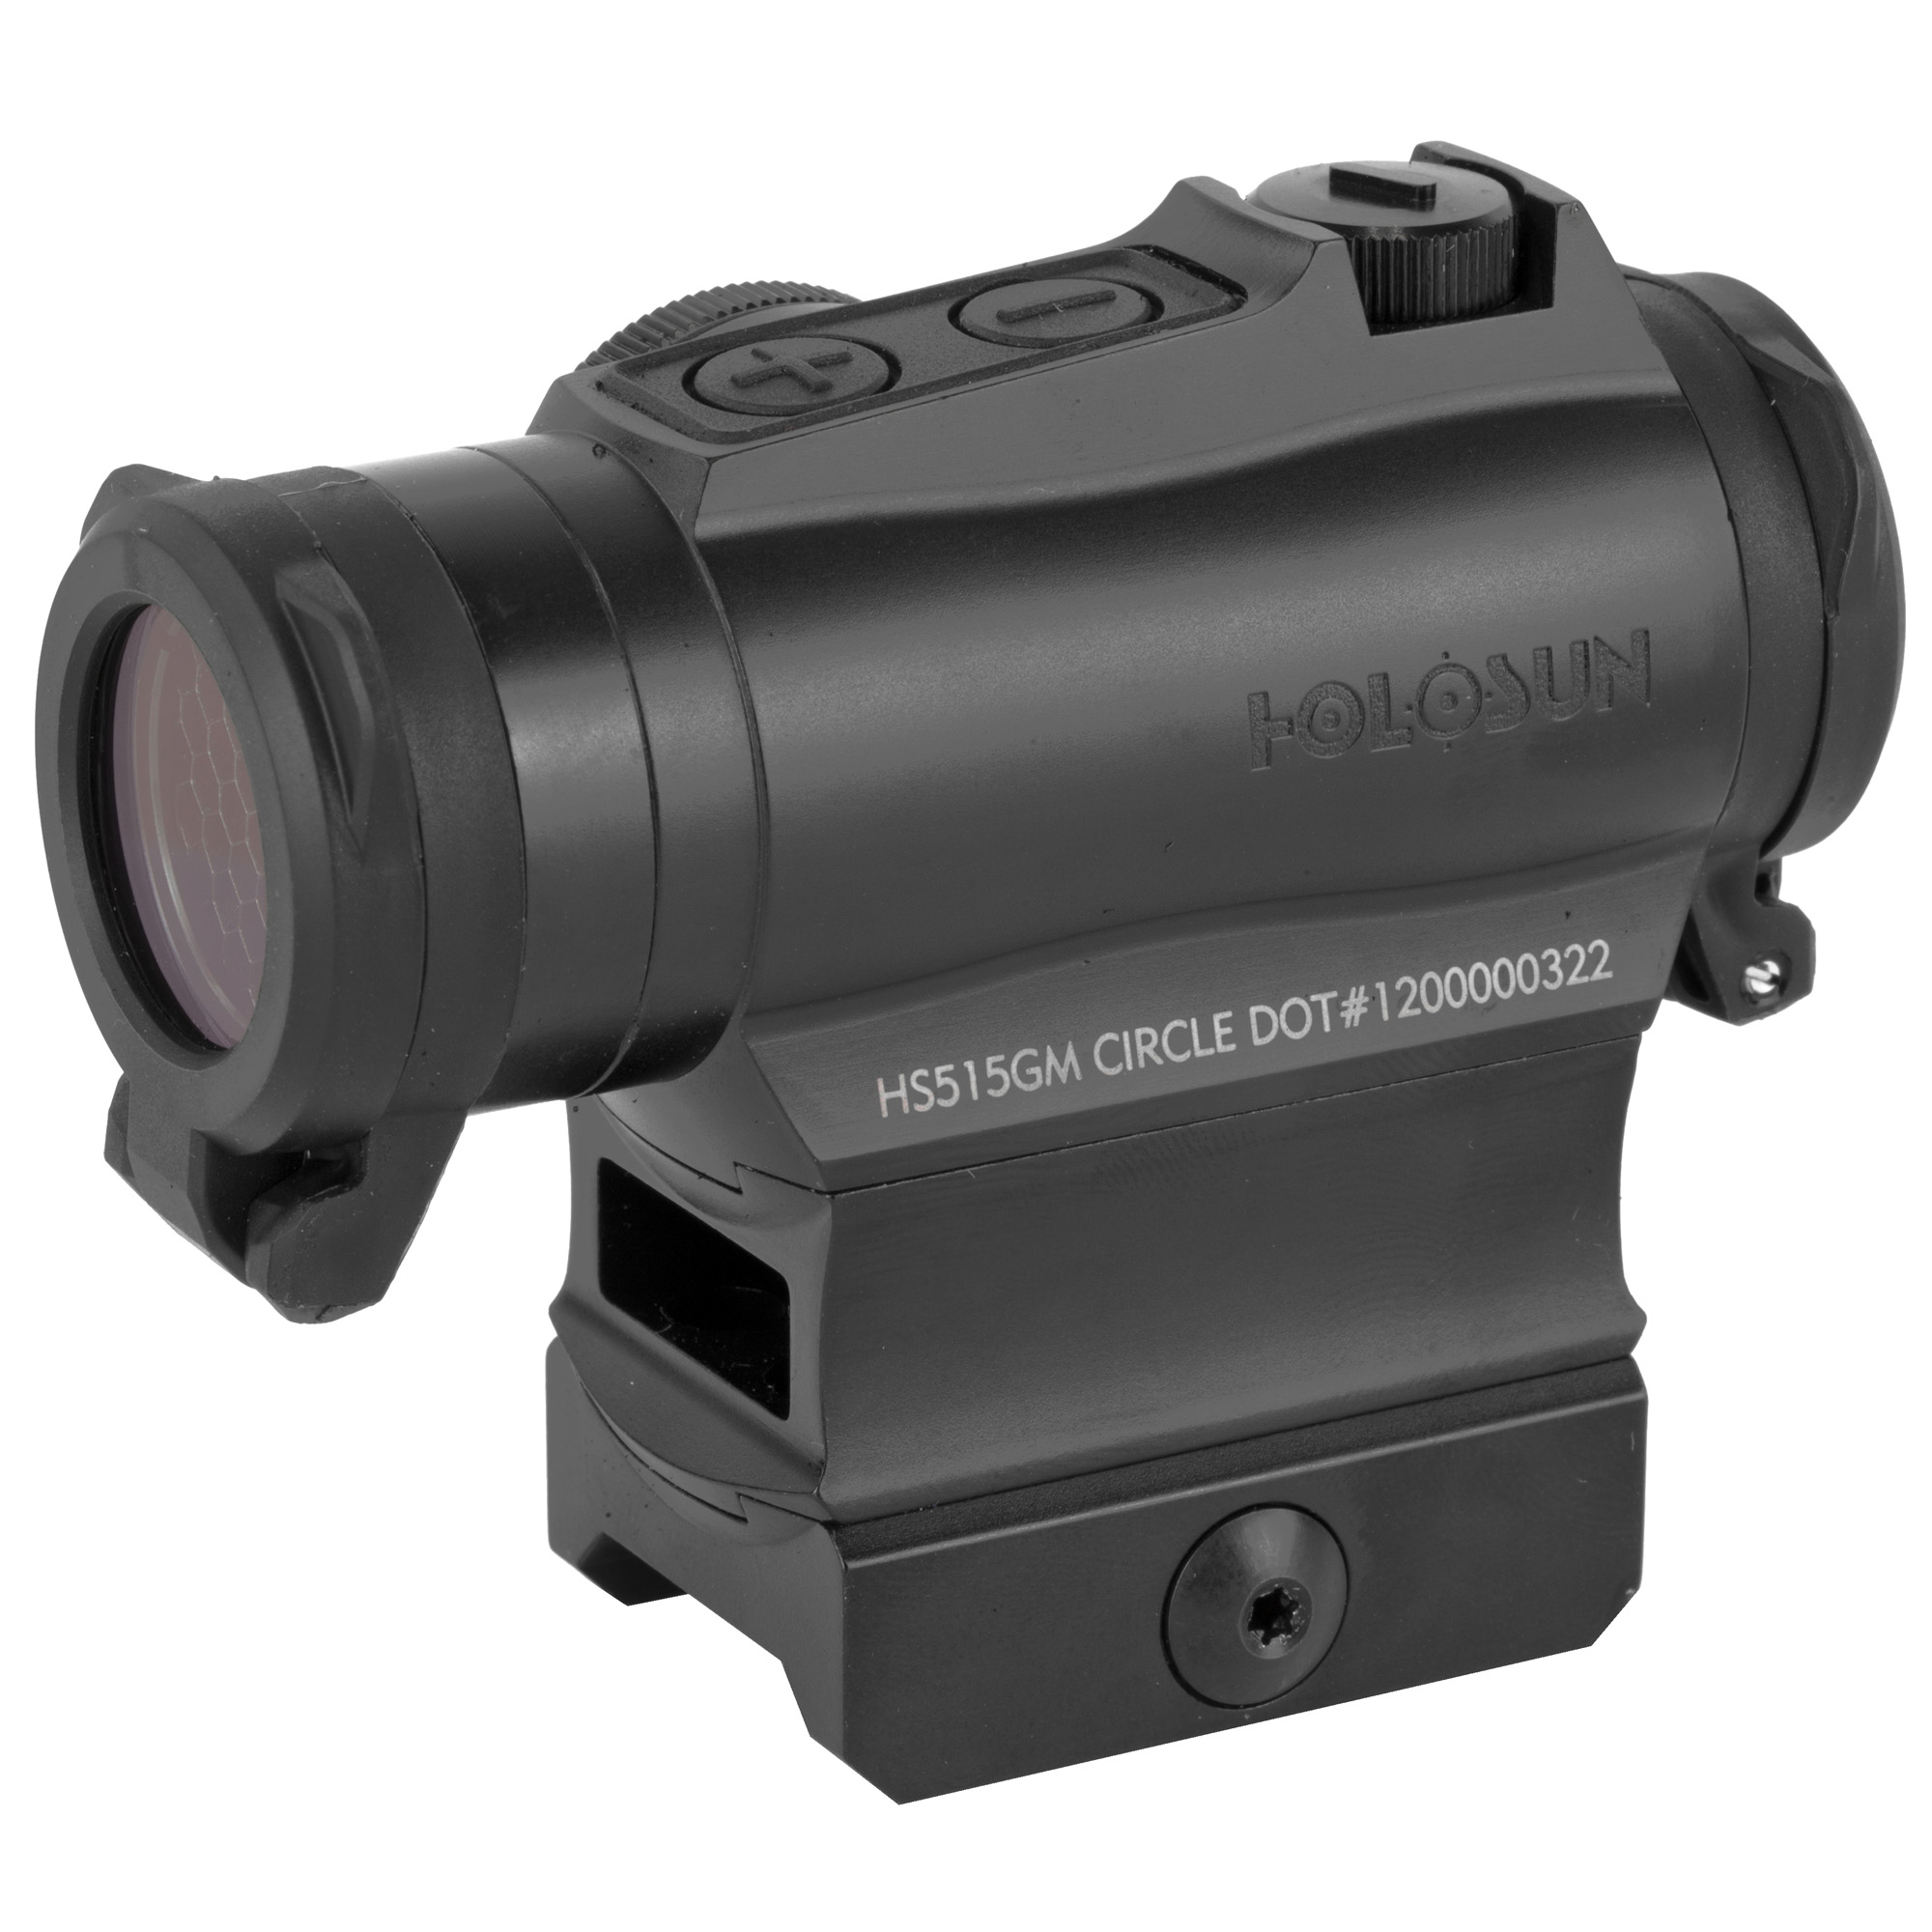 """The HS515GM is a micro red dot optic equipped with a 65 MOA circle dot reticle with the option of switching to a 2MOA dot only. The """"G"""" signifies that the battery is side mounted on the side of the optic. Employing new LED technology"""" the life-time for one CR2032 battery can reach 5 years on the 2 MOA dot. Holosun's """"Shake Awake"""" technology automatically turns the optic on at the slightest movement. When the optic senses no movement"""" it will go to sleep. This product includes clear flip-up lens covers"""" a quick release mount and a kill flash filter."""